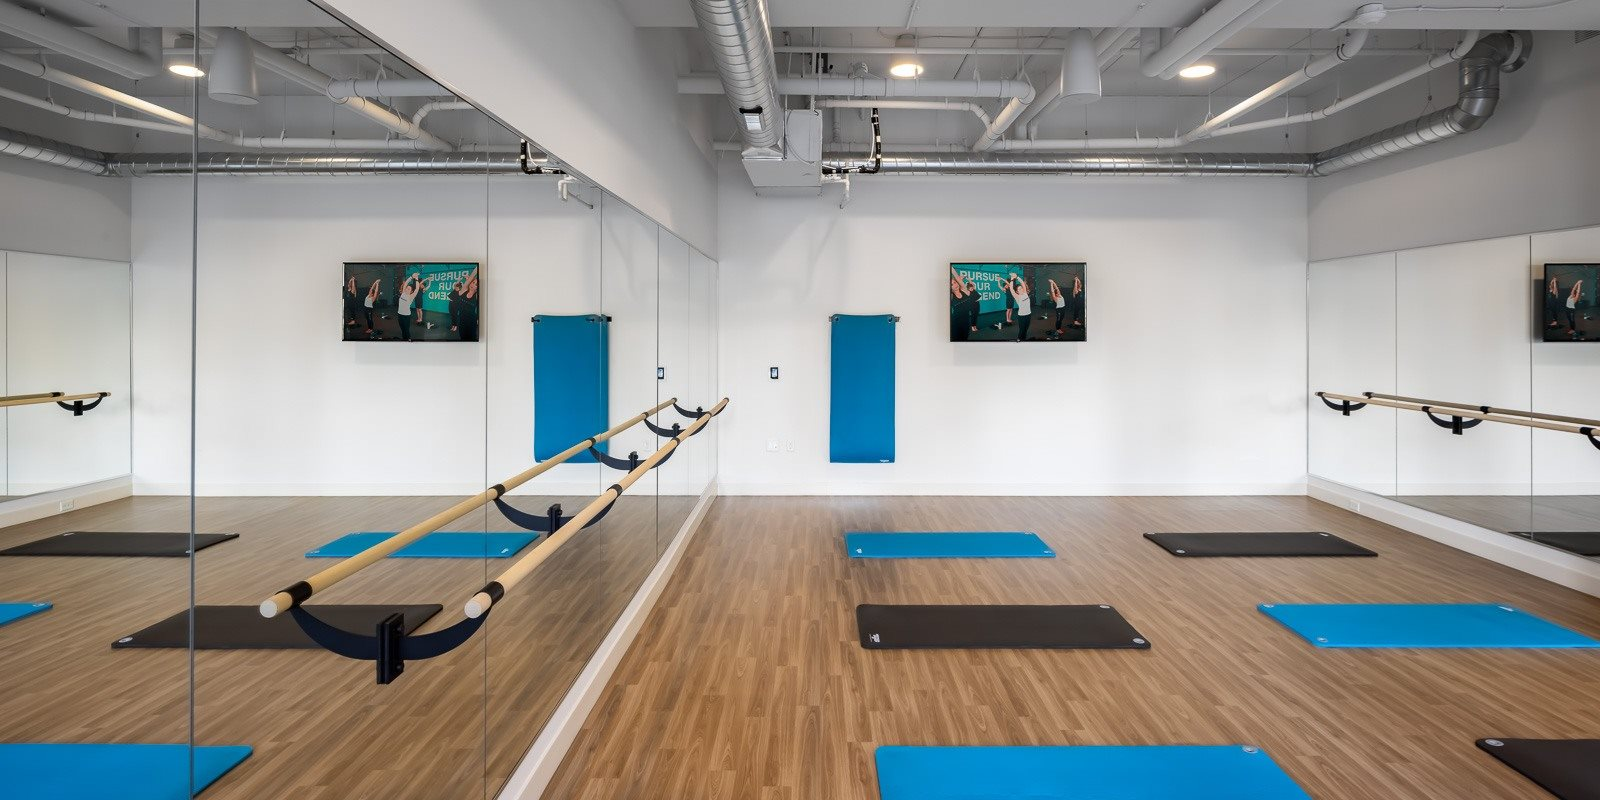 Yoga studio with Alchemy365 programming, barre and mirrors